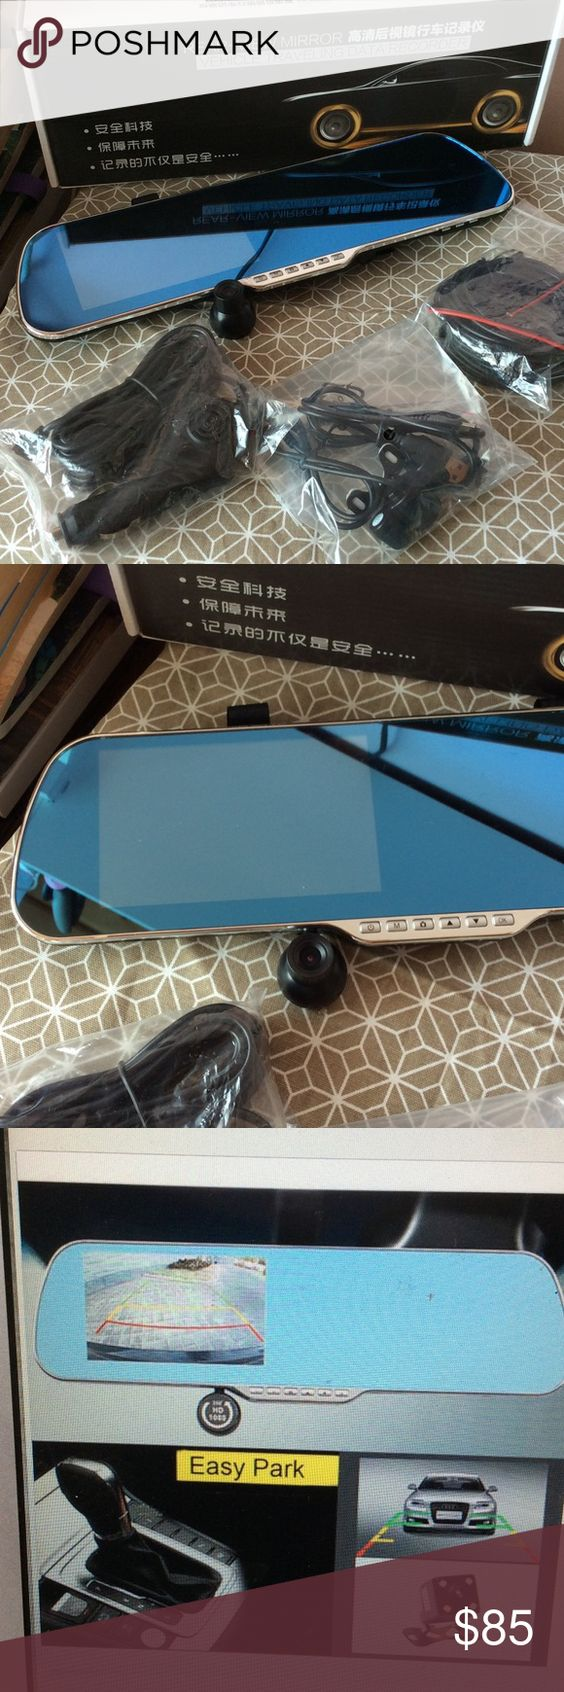 """1080P Android Wifi GPS Car Rear View Mirror Camera New! 5"""" Screen dual lens recording + backup camera. Android 4.4 Os, for all kinds of APPS. GPS function. FM transmitter. Music/ Video play/ Surf Internet. Wifi function. Blue mirror anti dazzling design. Package included: 5"""" touch car DVR, USB cable, Car charger, back camera. Accessories"""